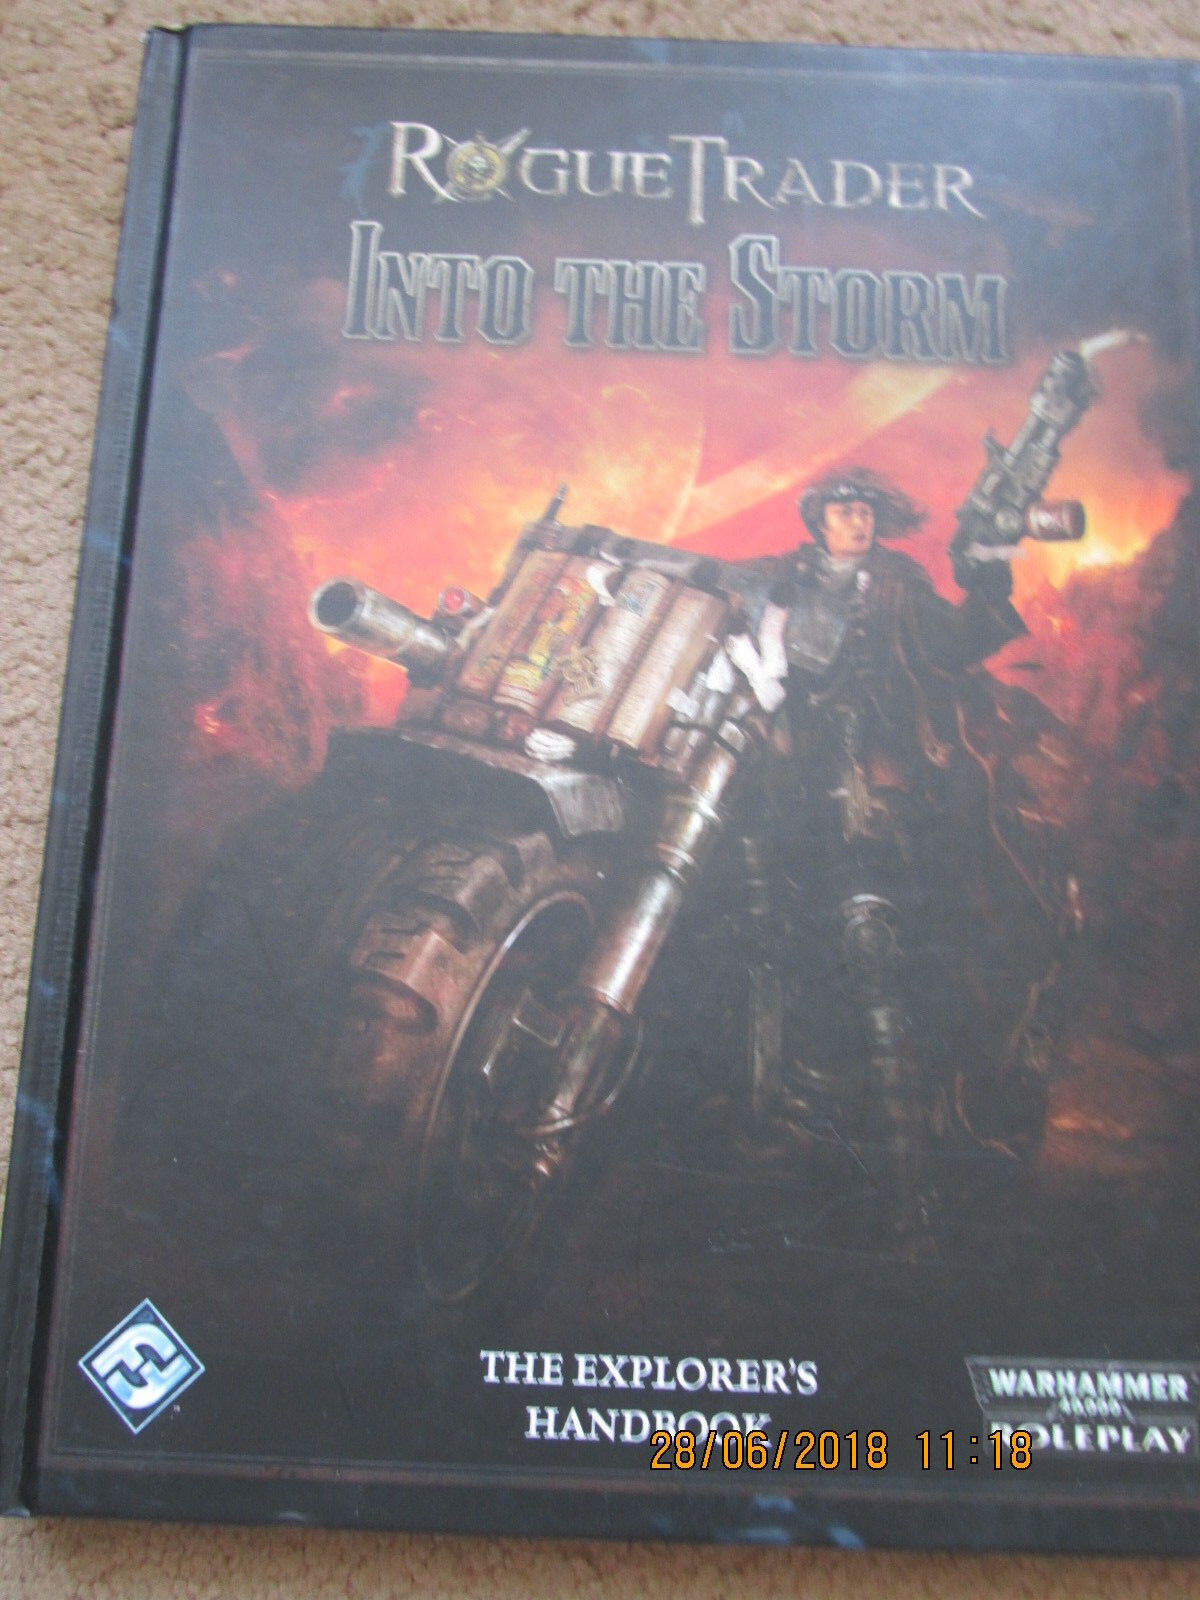 WARHAMMER 40,000 ROGUE TRADER INTO THE STORM EXPLORERS HANDBOOK FF VGC HB HC